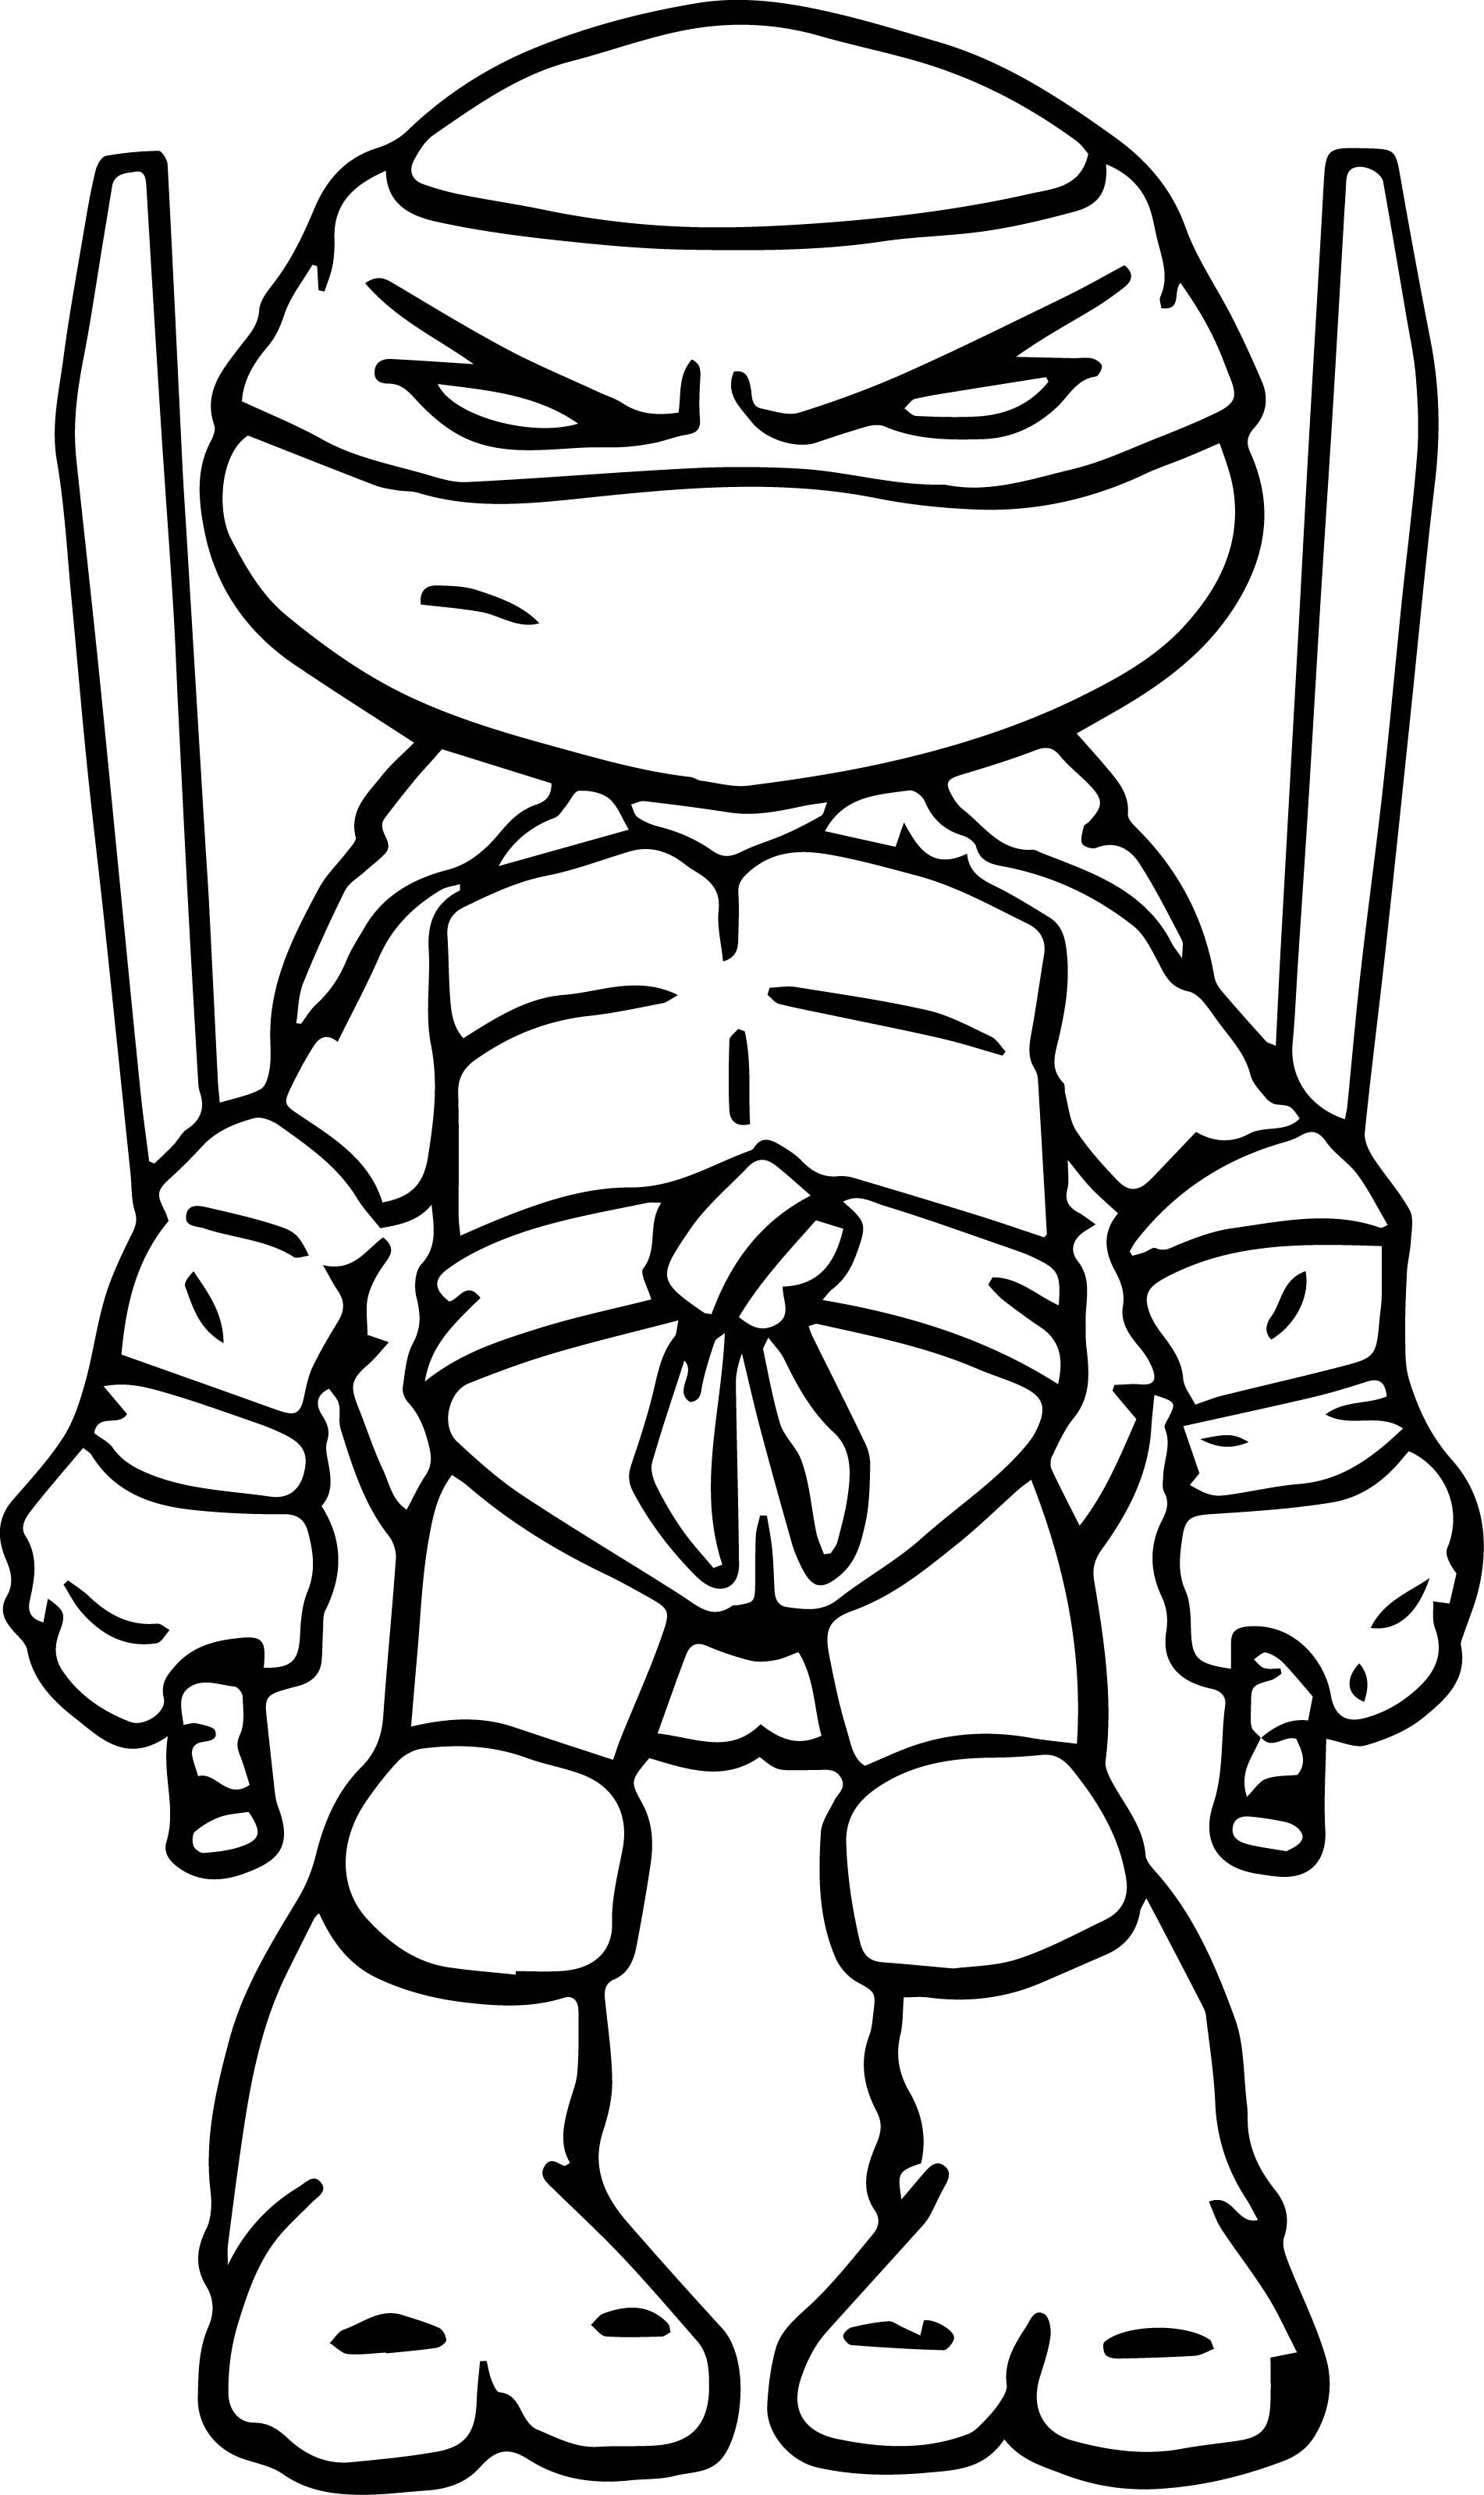 ninja turtles art coloring page - Tmnt Coloring Pages